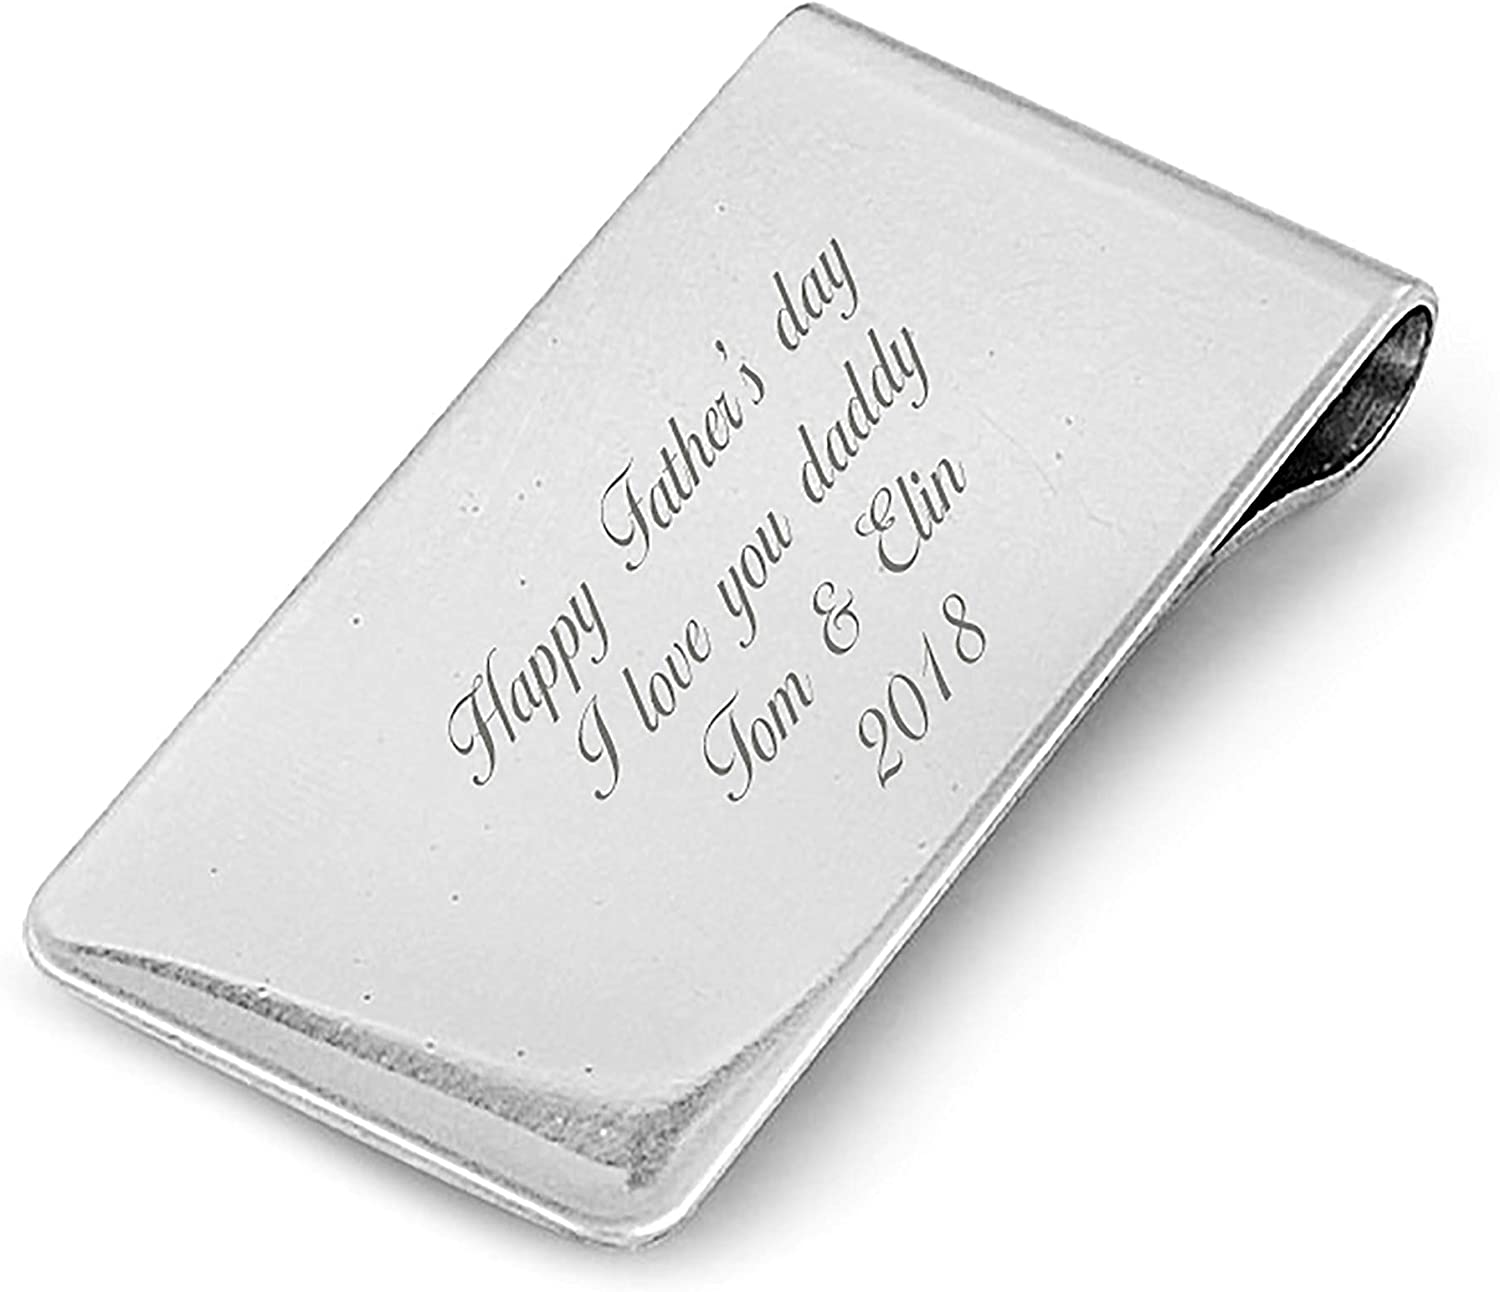 Custom Personalized Laser Engraved Stainless Steel Money Clip, For Dad, Husband, Friend, Grandpa,and mom boyfriend